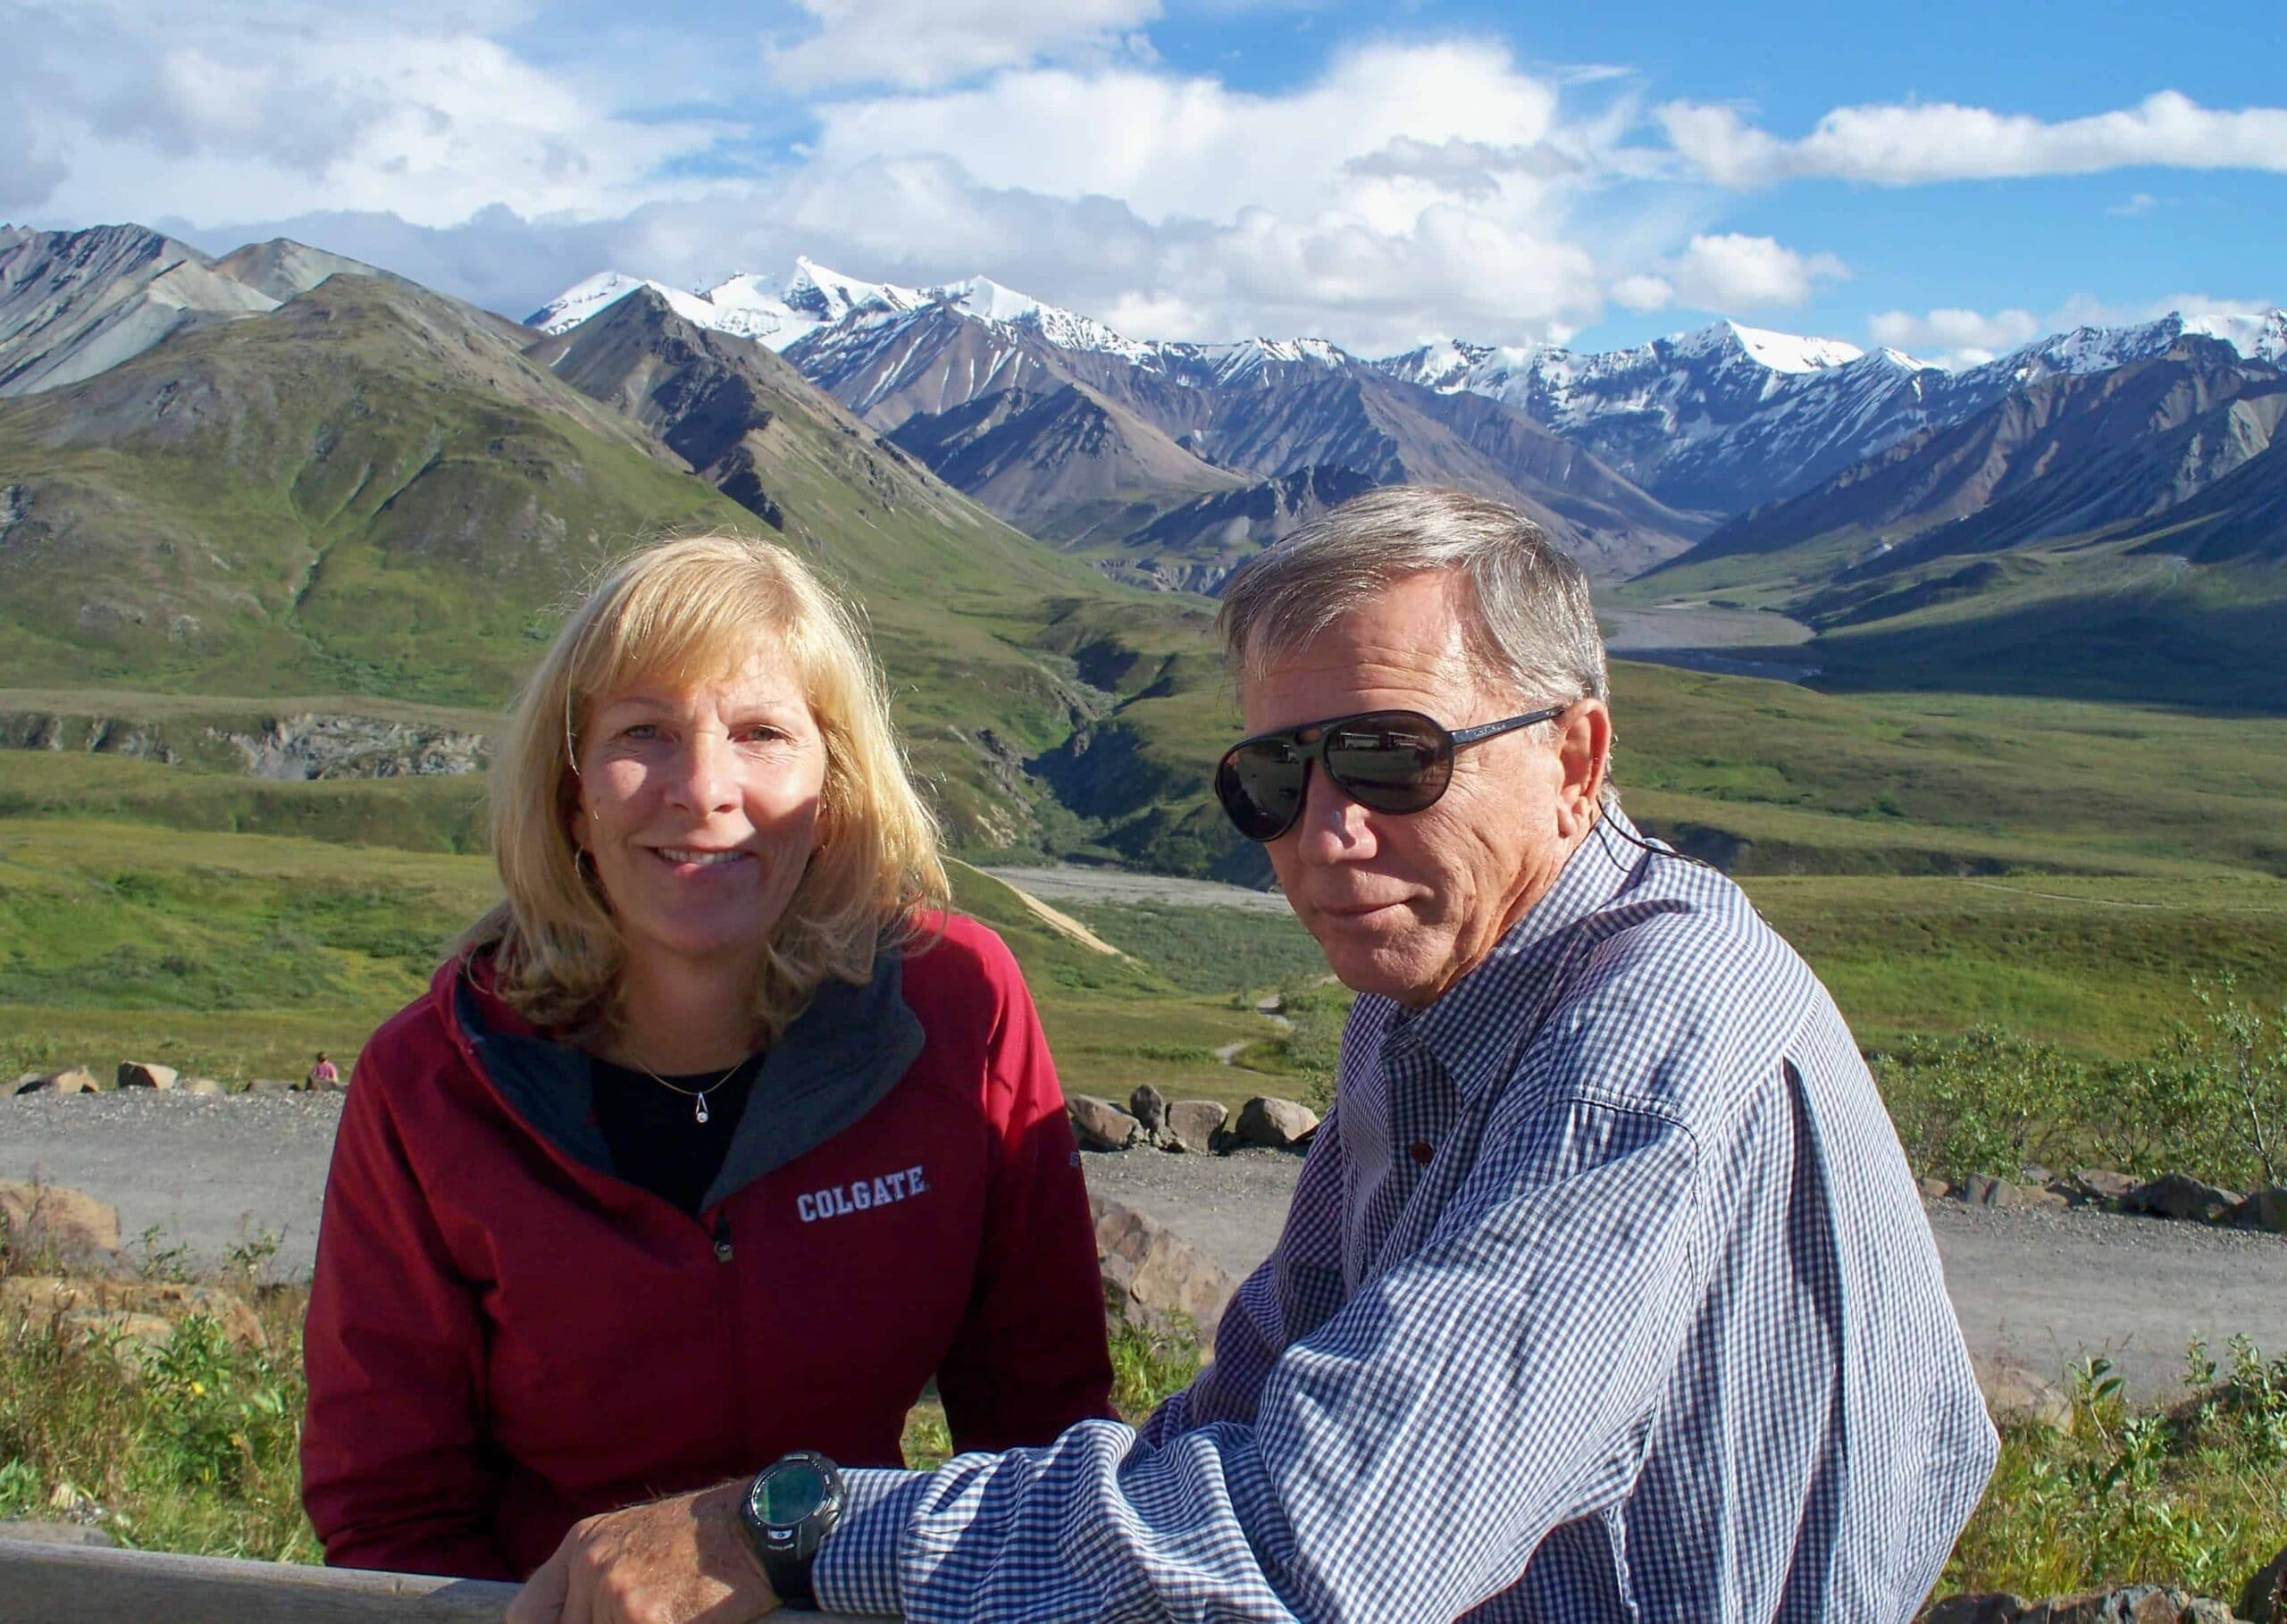 Happy couple enjoying a viewpoint of Denali National Park with green tundra & mountain range in the background.